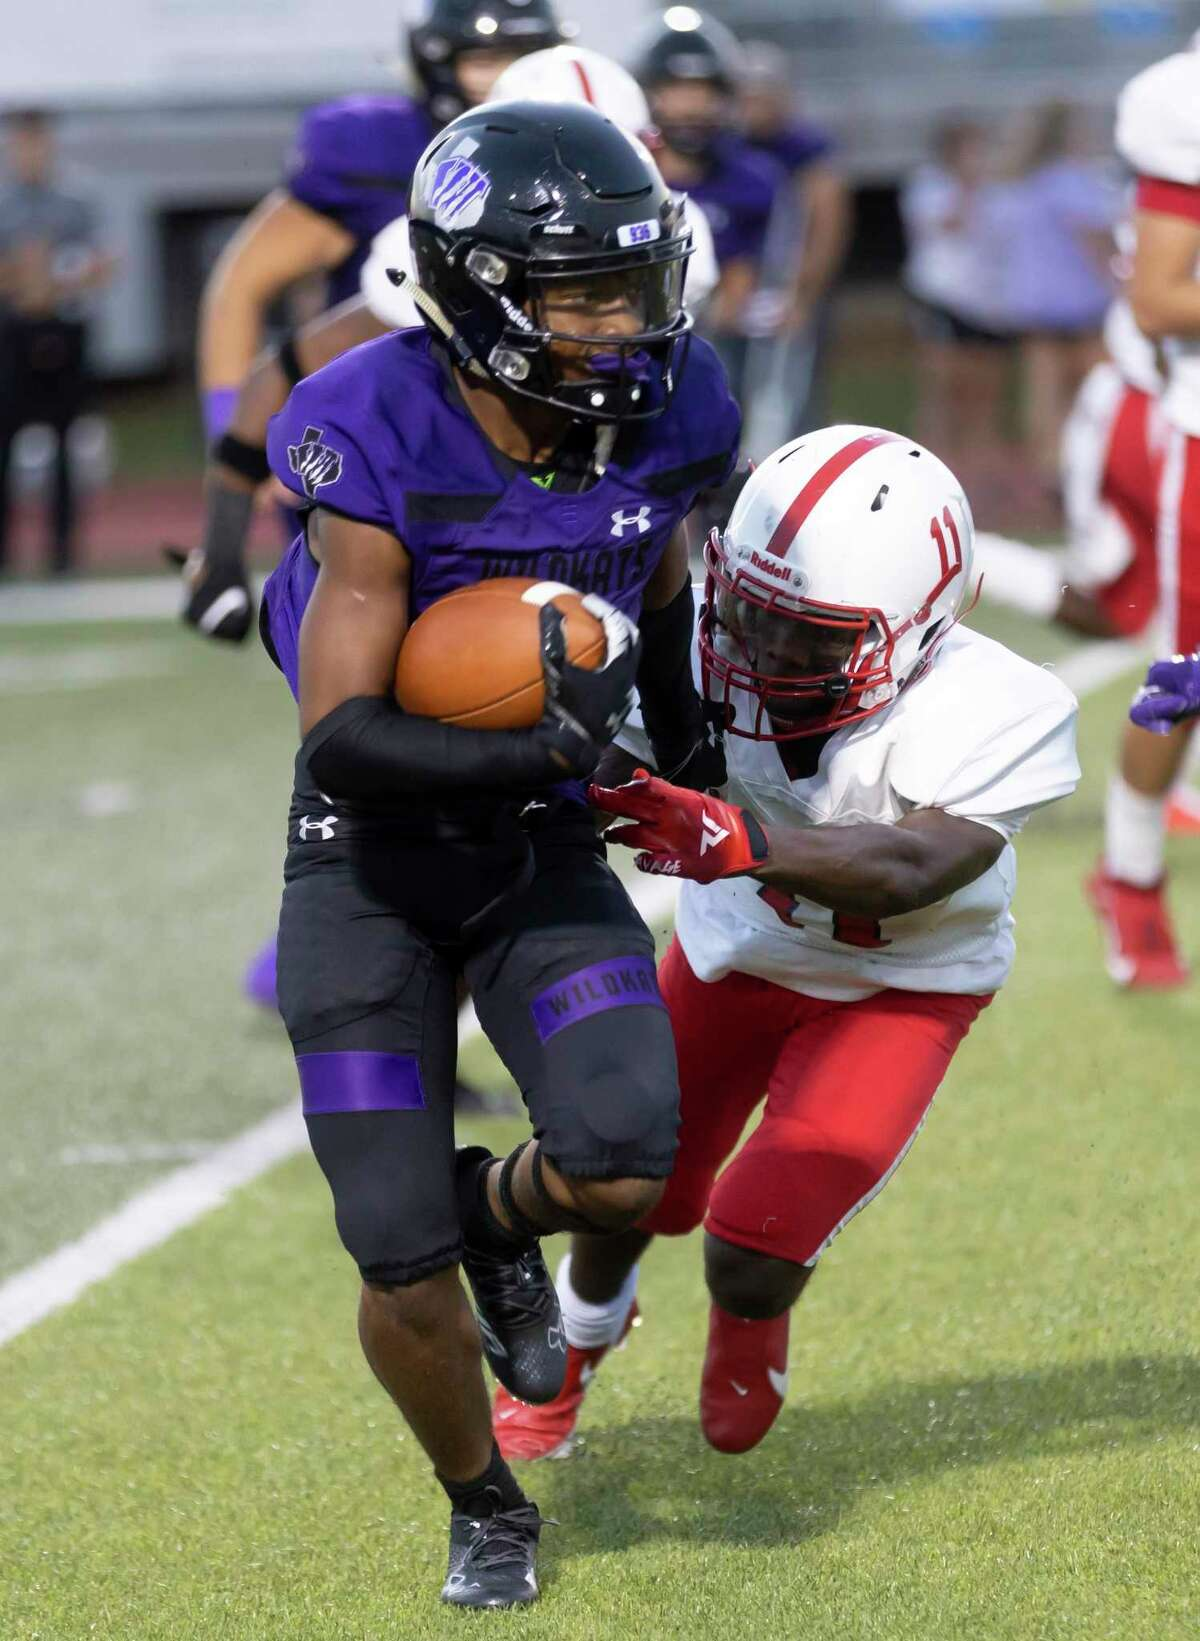 Willis running back Devon Lovelady (1), shown here last week against Houston Bellaire, scored on an 80-yard touchdown Friday night at A&M Consolidated.